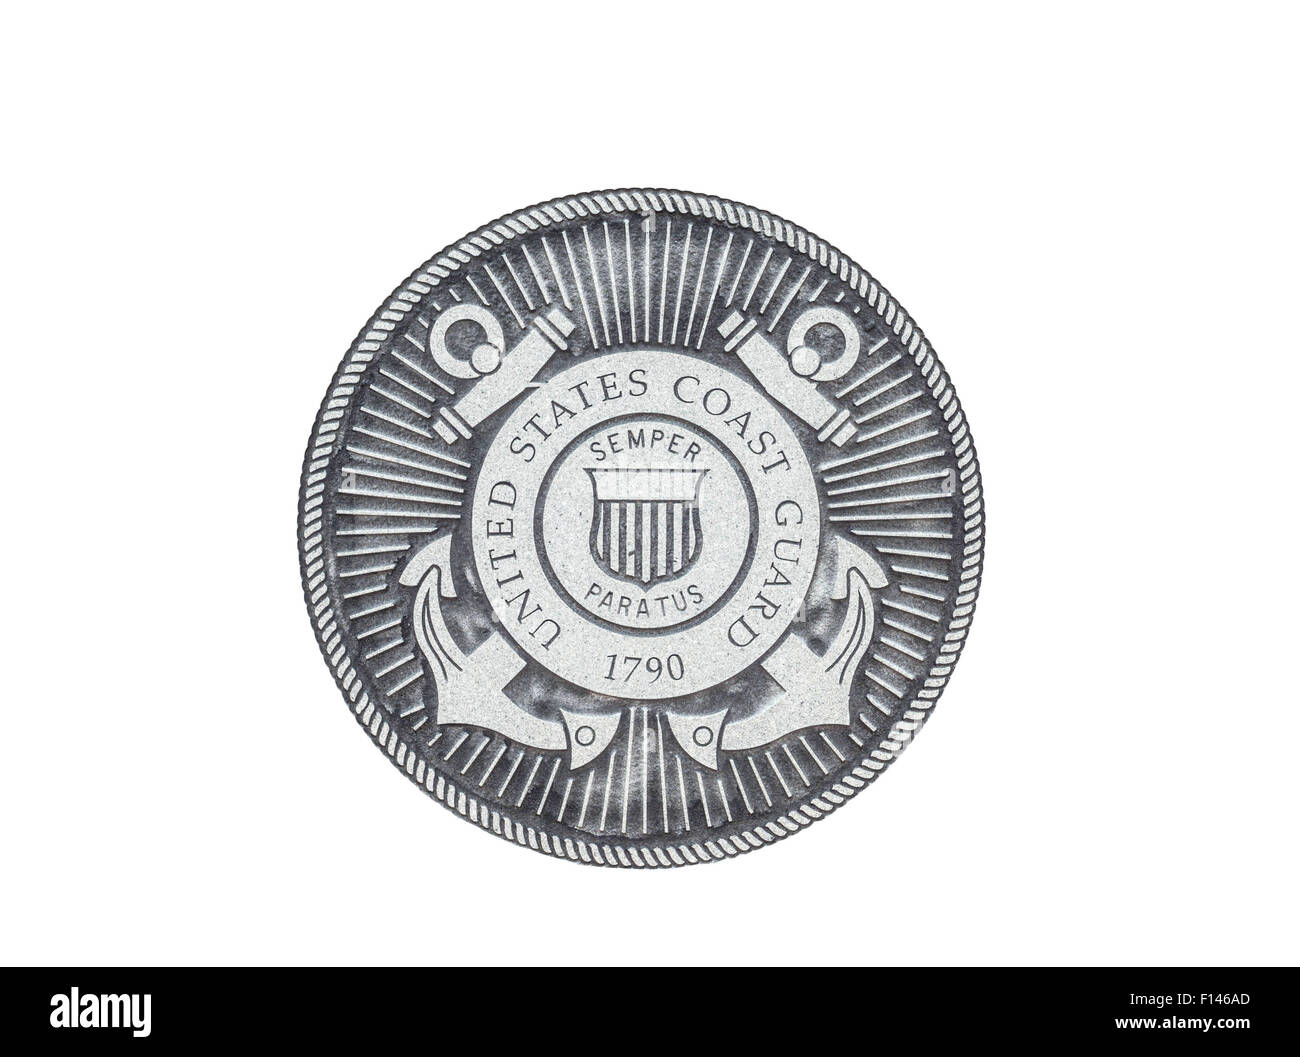 U.S. Coast Guard official seal on a white background. - Stock Image